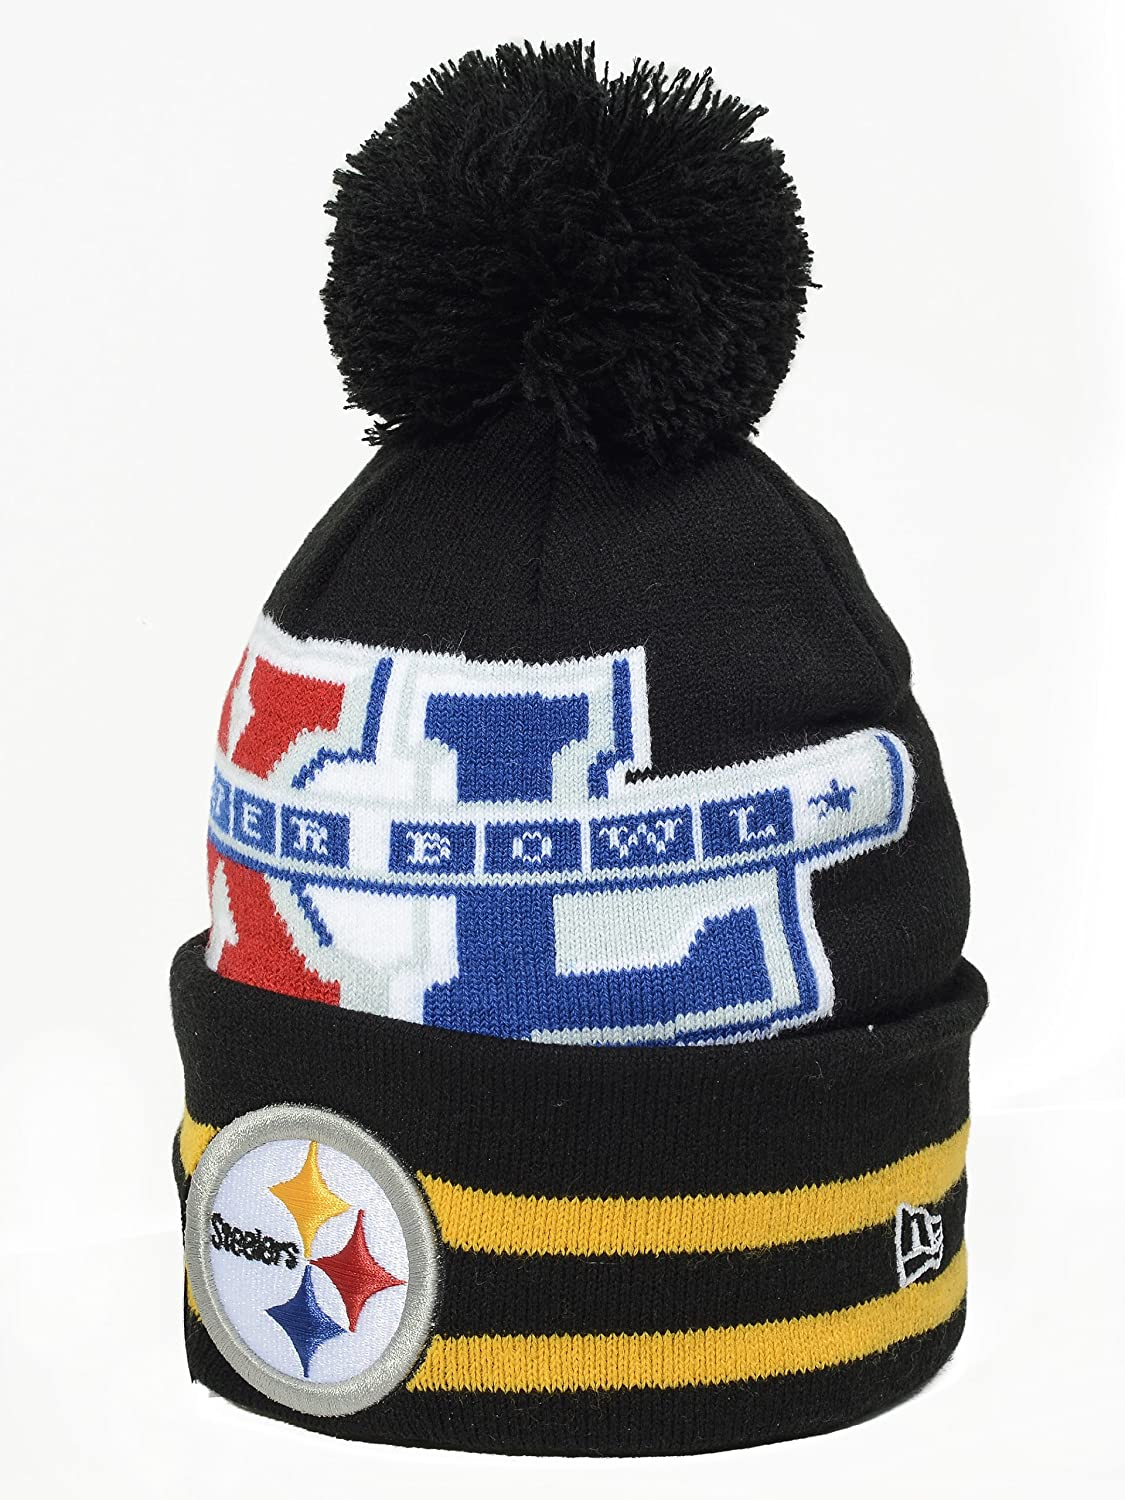 New Eraチームニットキャップ  Steelers Super Bowl Wide Point Team colors B00HQ2T1CS